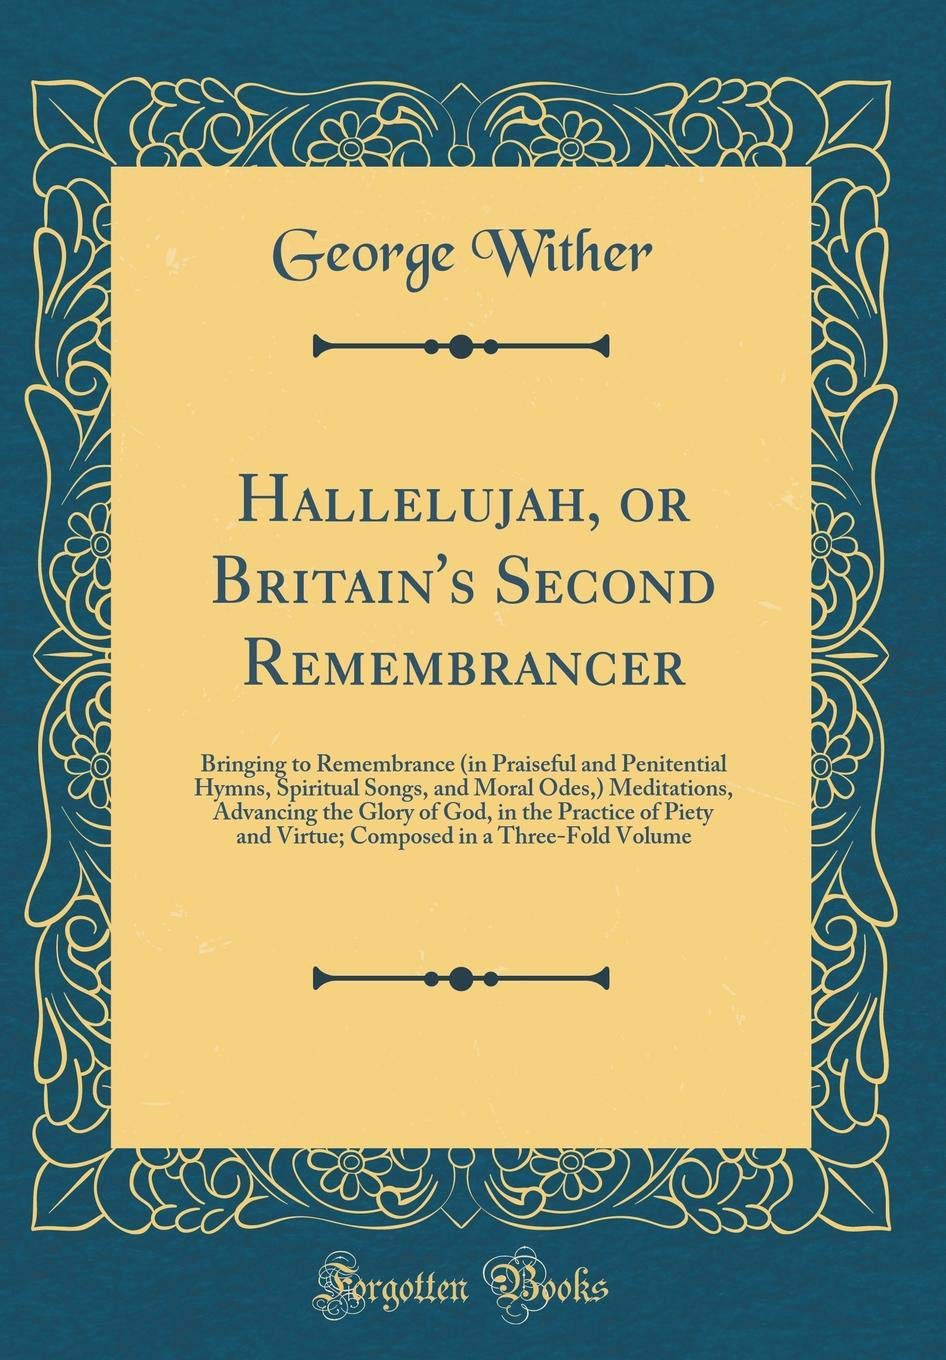 Download Hallelujah, or Britain's Second Remembrancer: Bringing to Remembrance (in Praiseful and Penitential Hymns, Spiritual Songs, and Moral Odes,) ... and Virtue; Composed in a Three-Fold Volume ebook